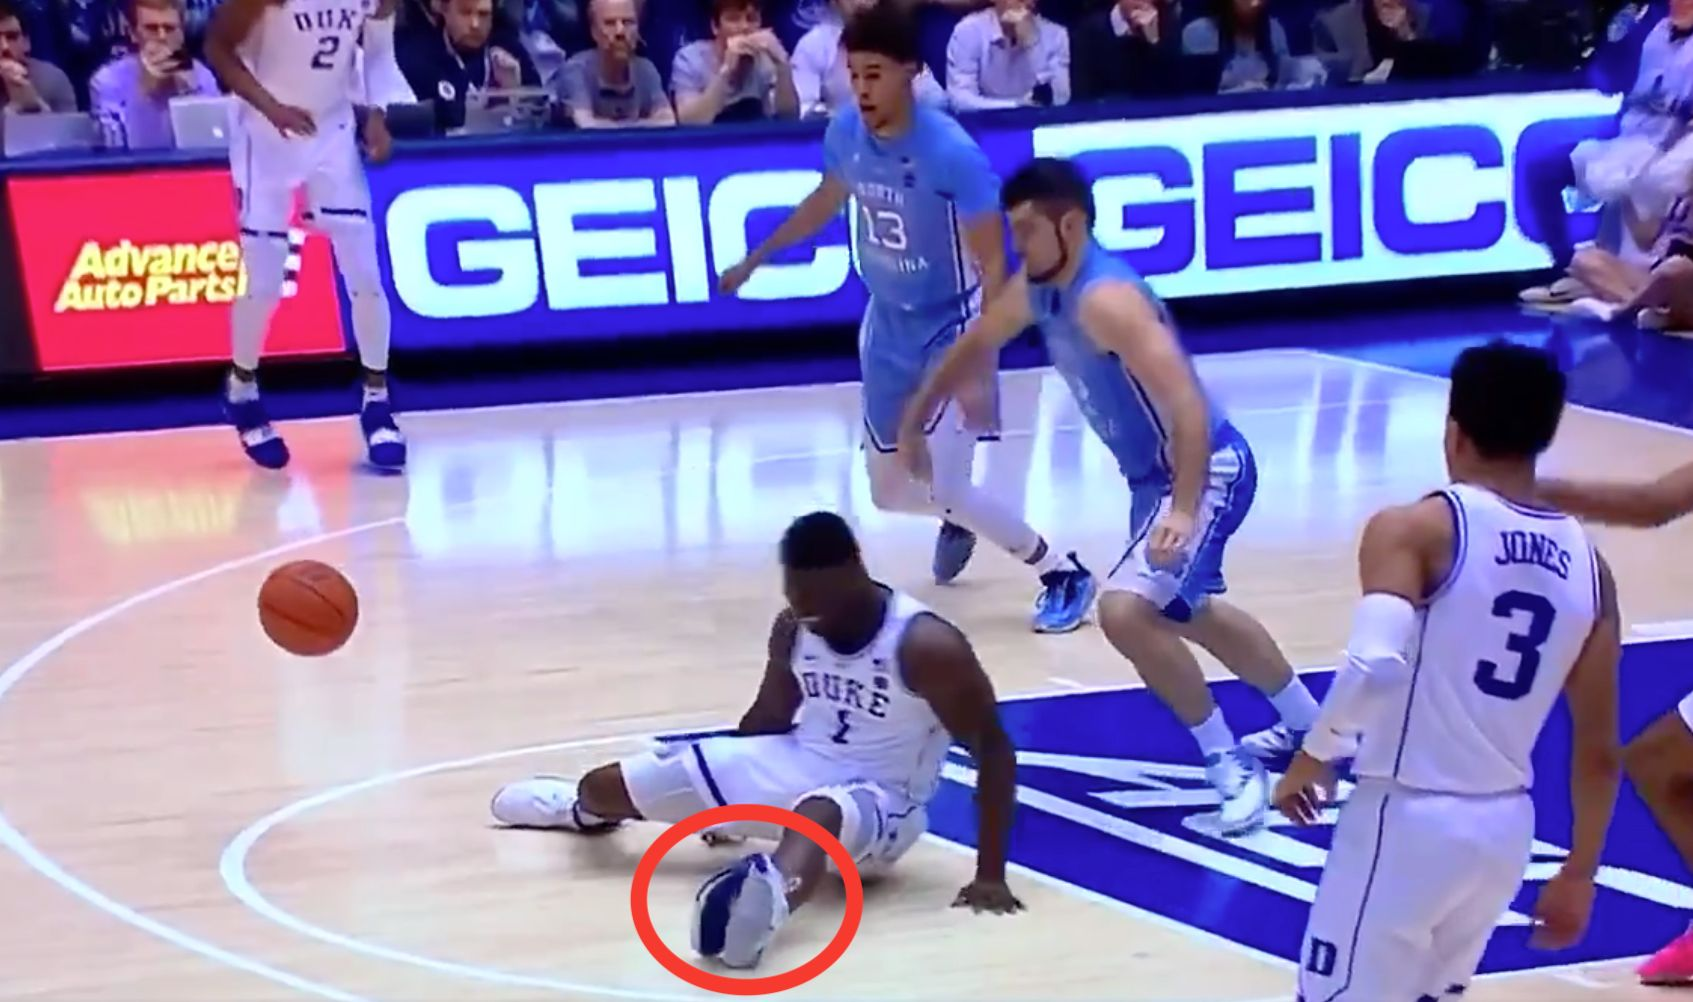 Nike Basketball Shoe Blows Out